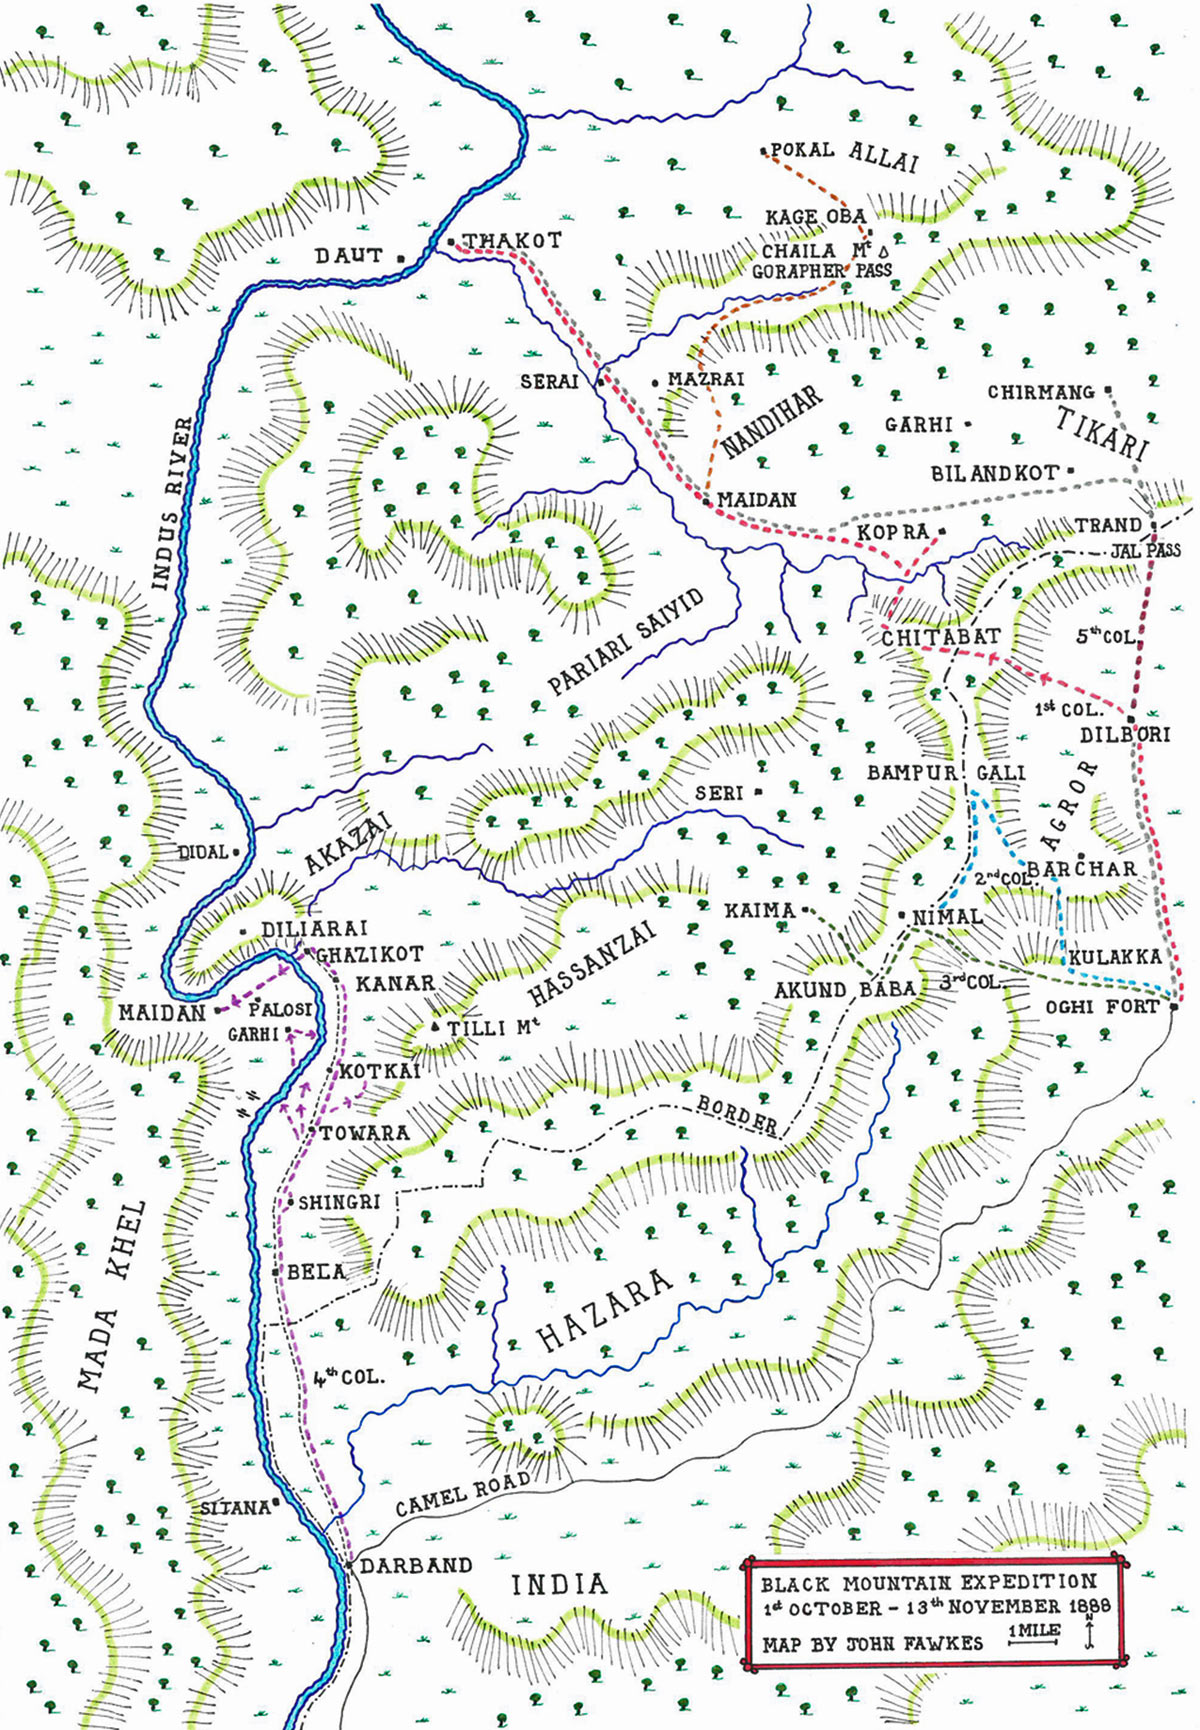 Map of the Black Mountain Expedition from 1st October 1888 to 13th November 1888 on the North-West Frontier of India: map by John Fawkes